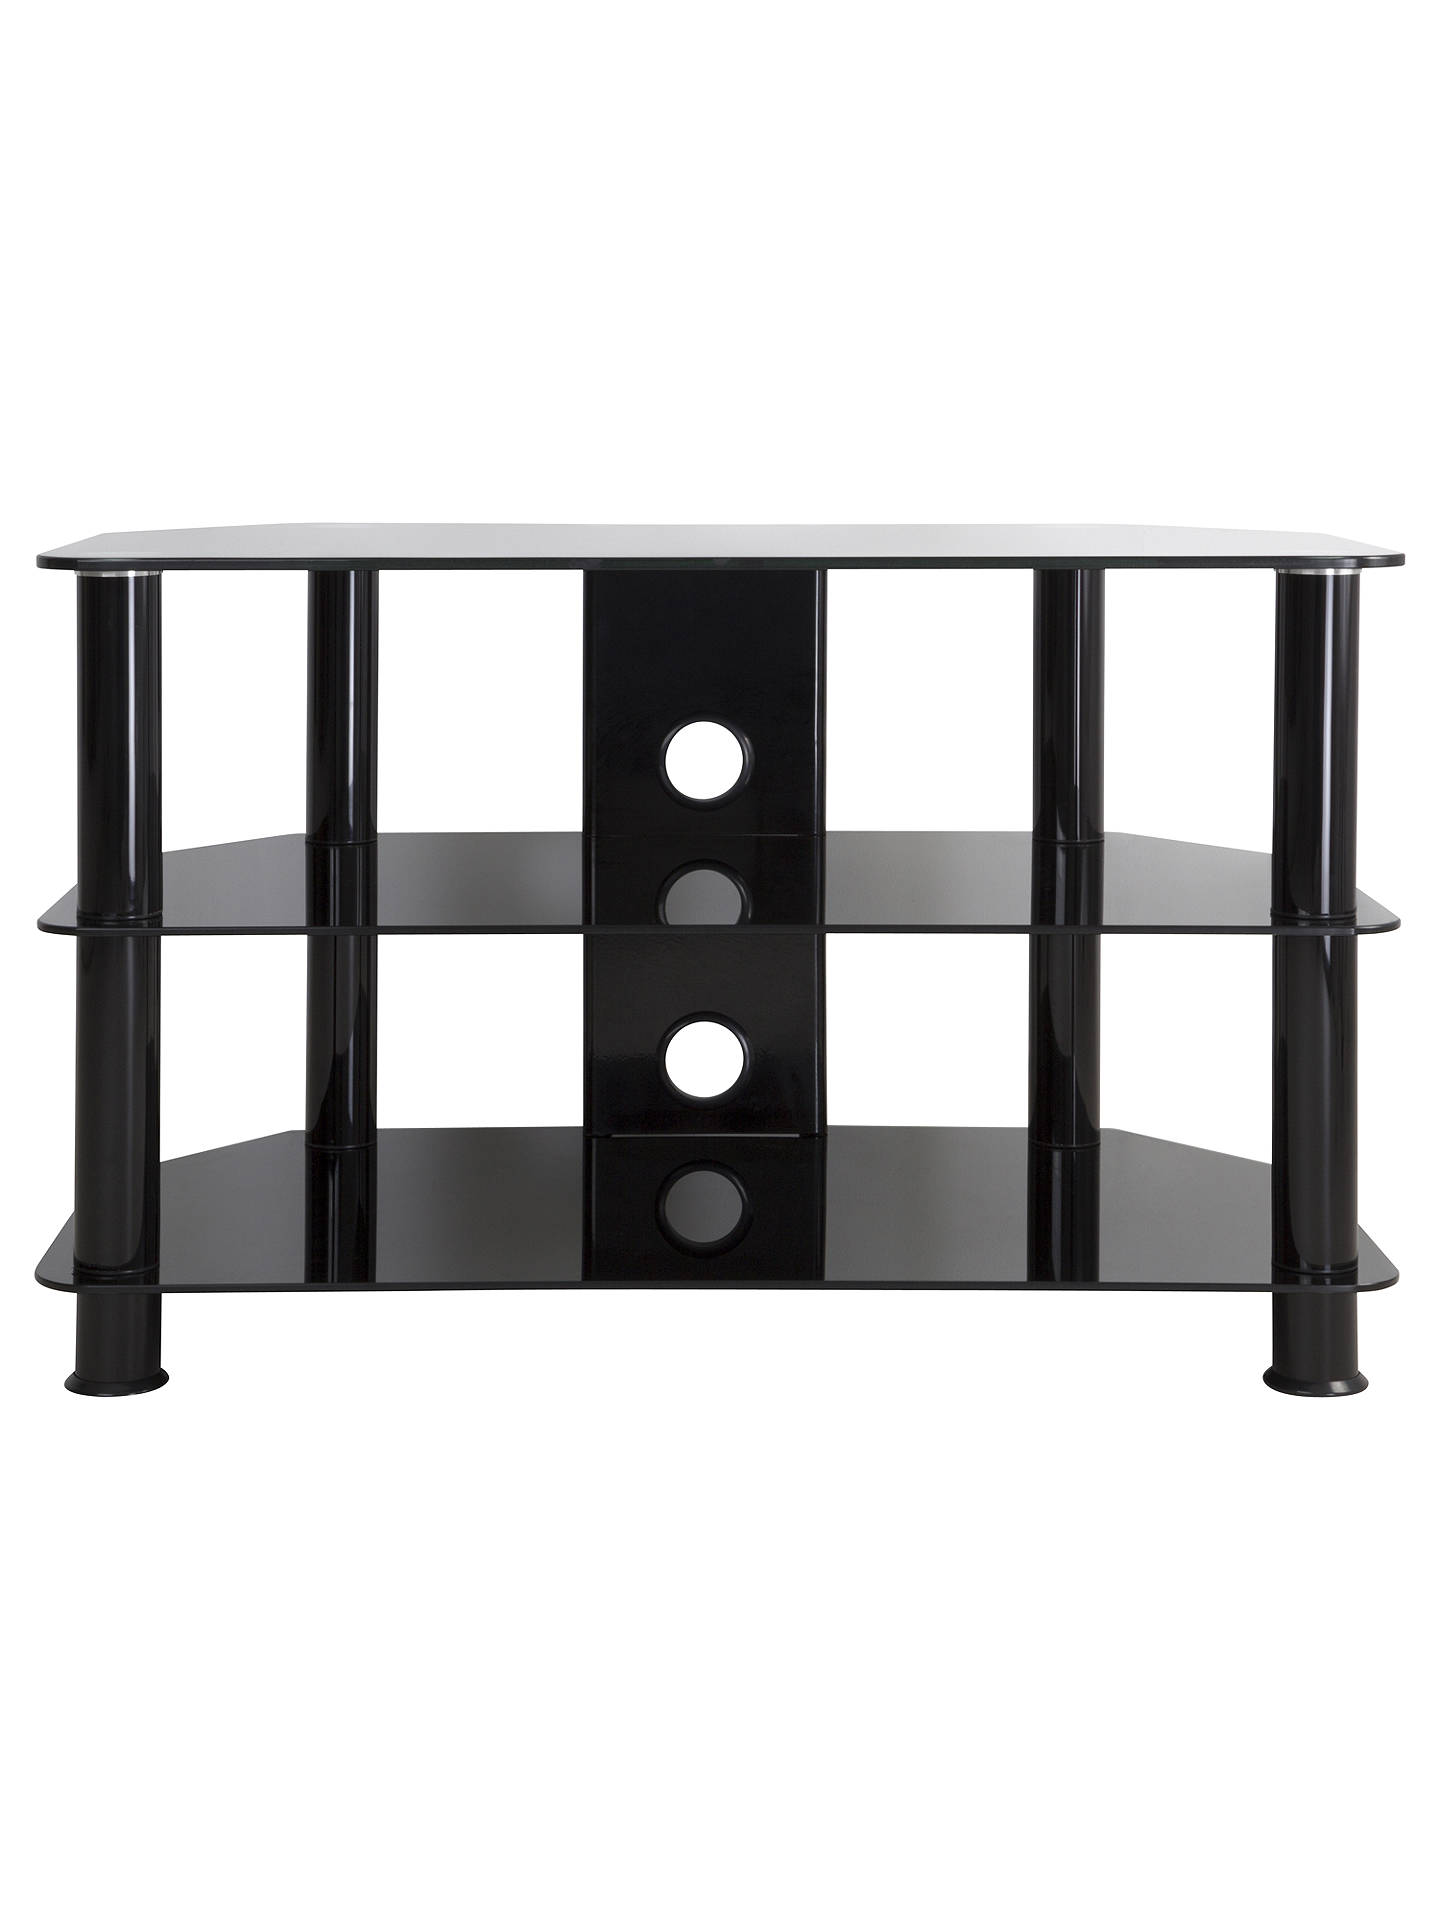 John Lewis Partners Gp800 Tv Stand For Tvs Up To 40 Black Online